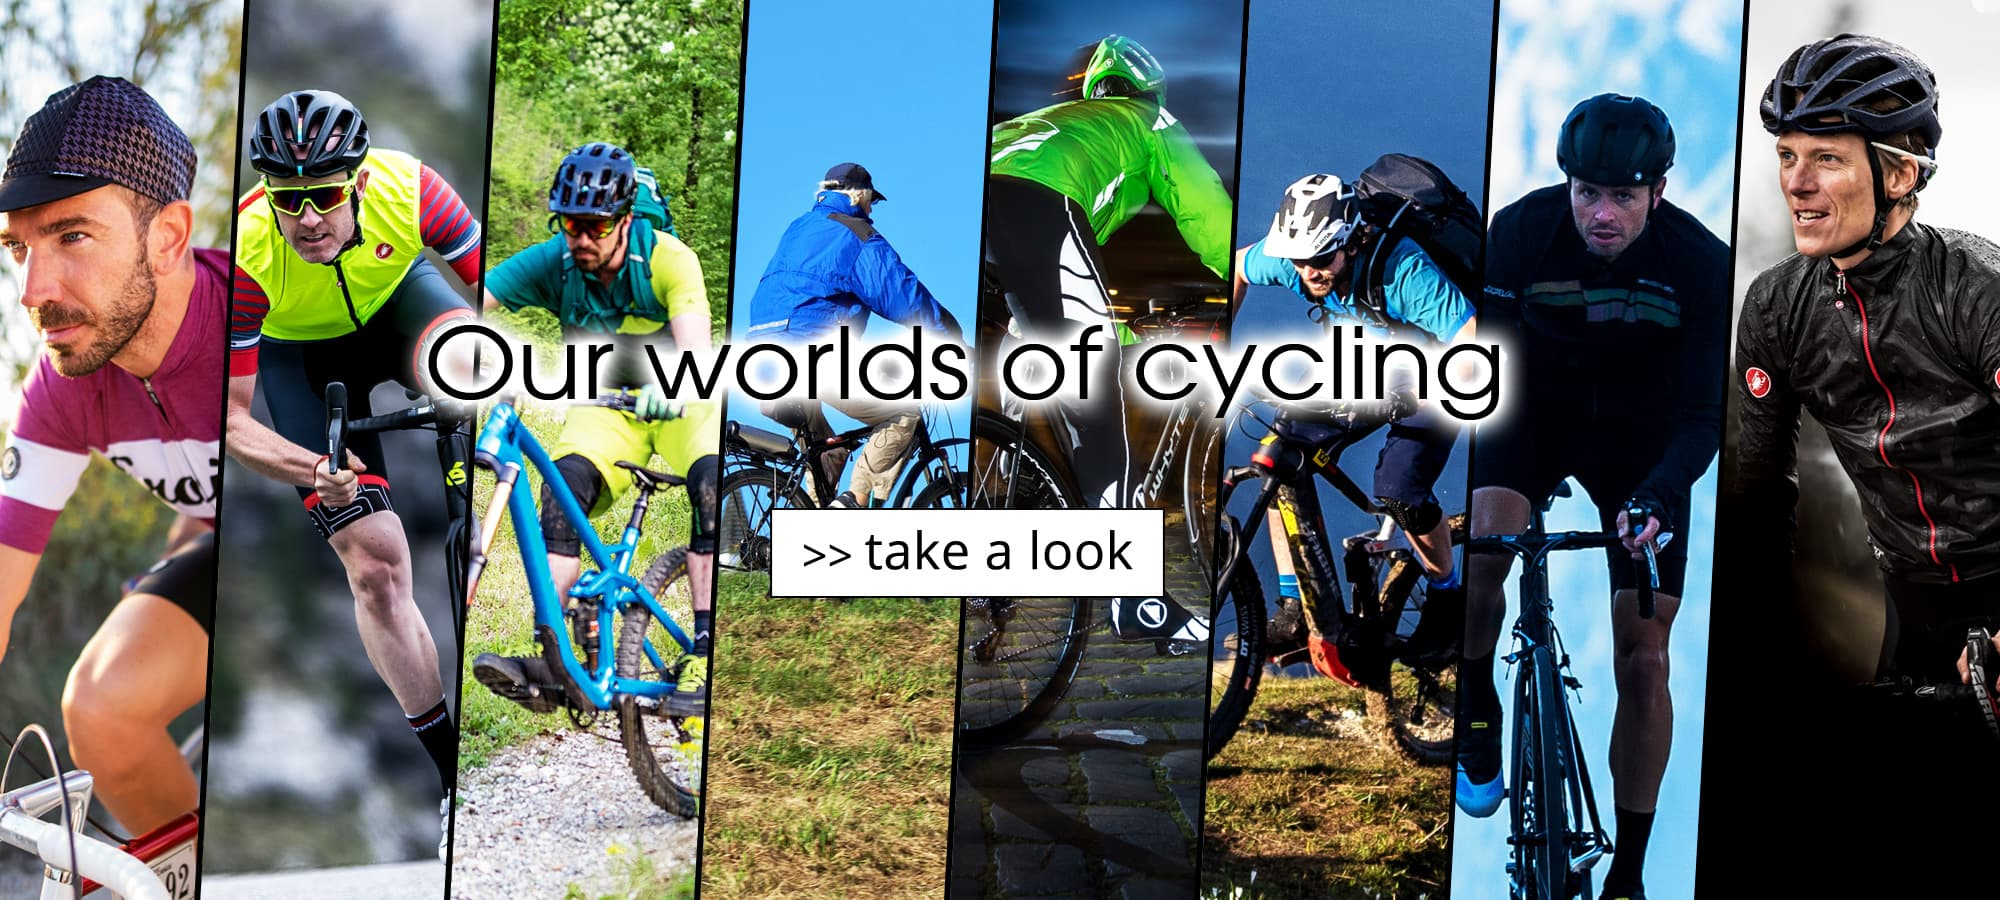 Our worlds of cycling - The short way to your favourite product